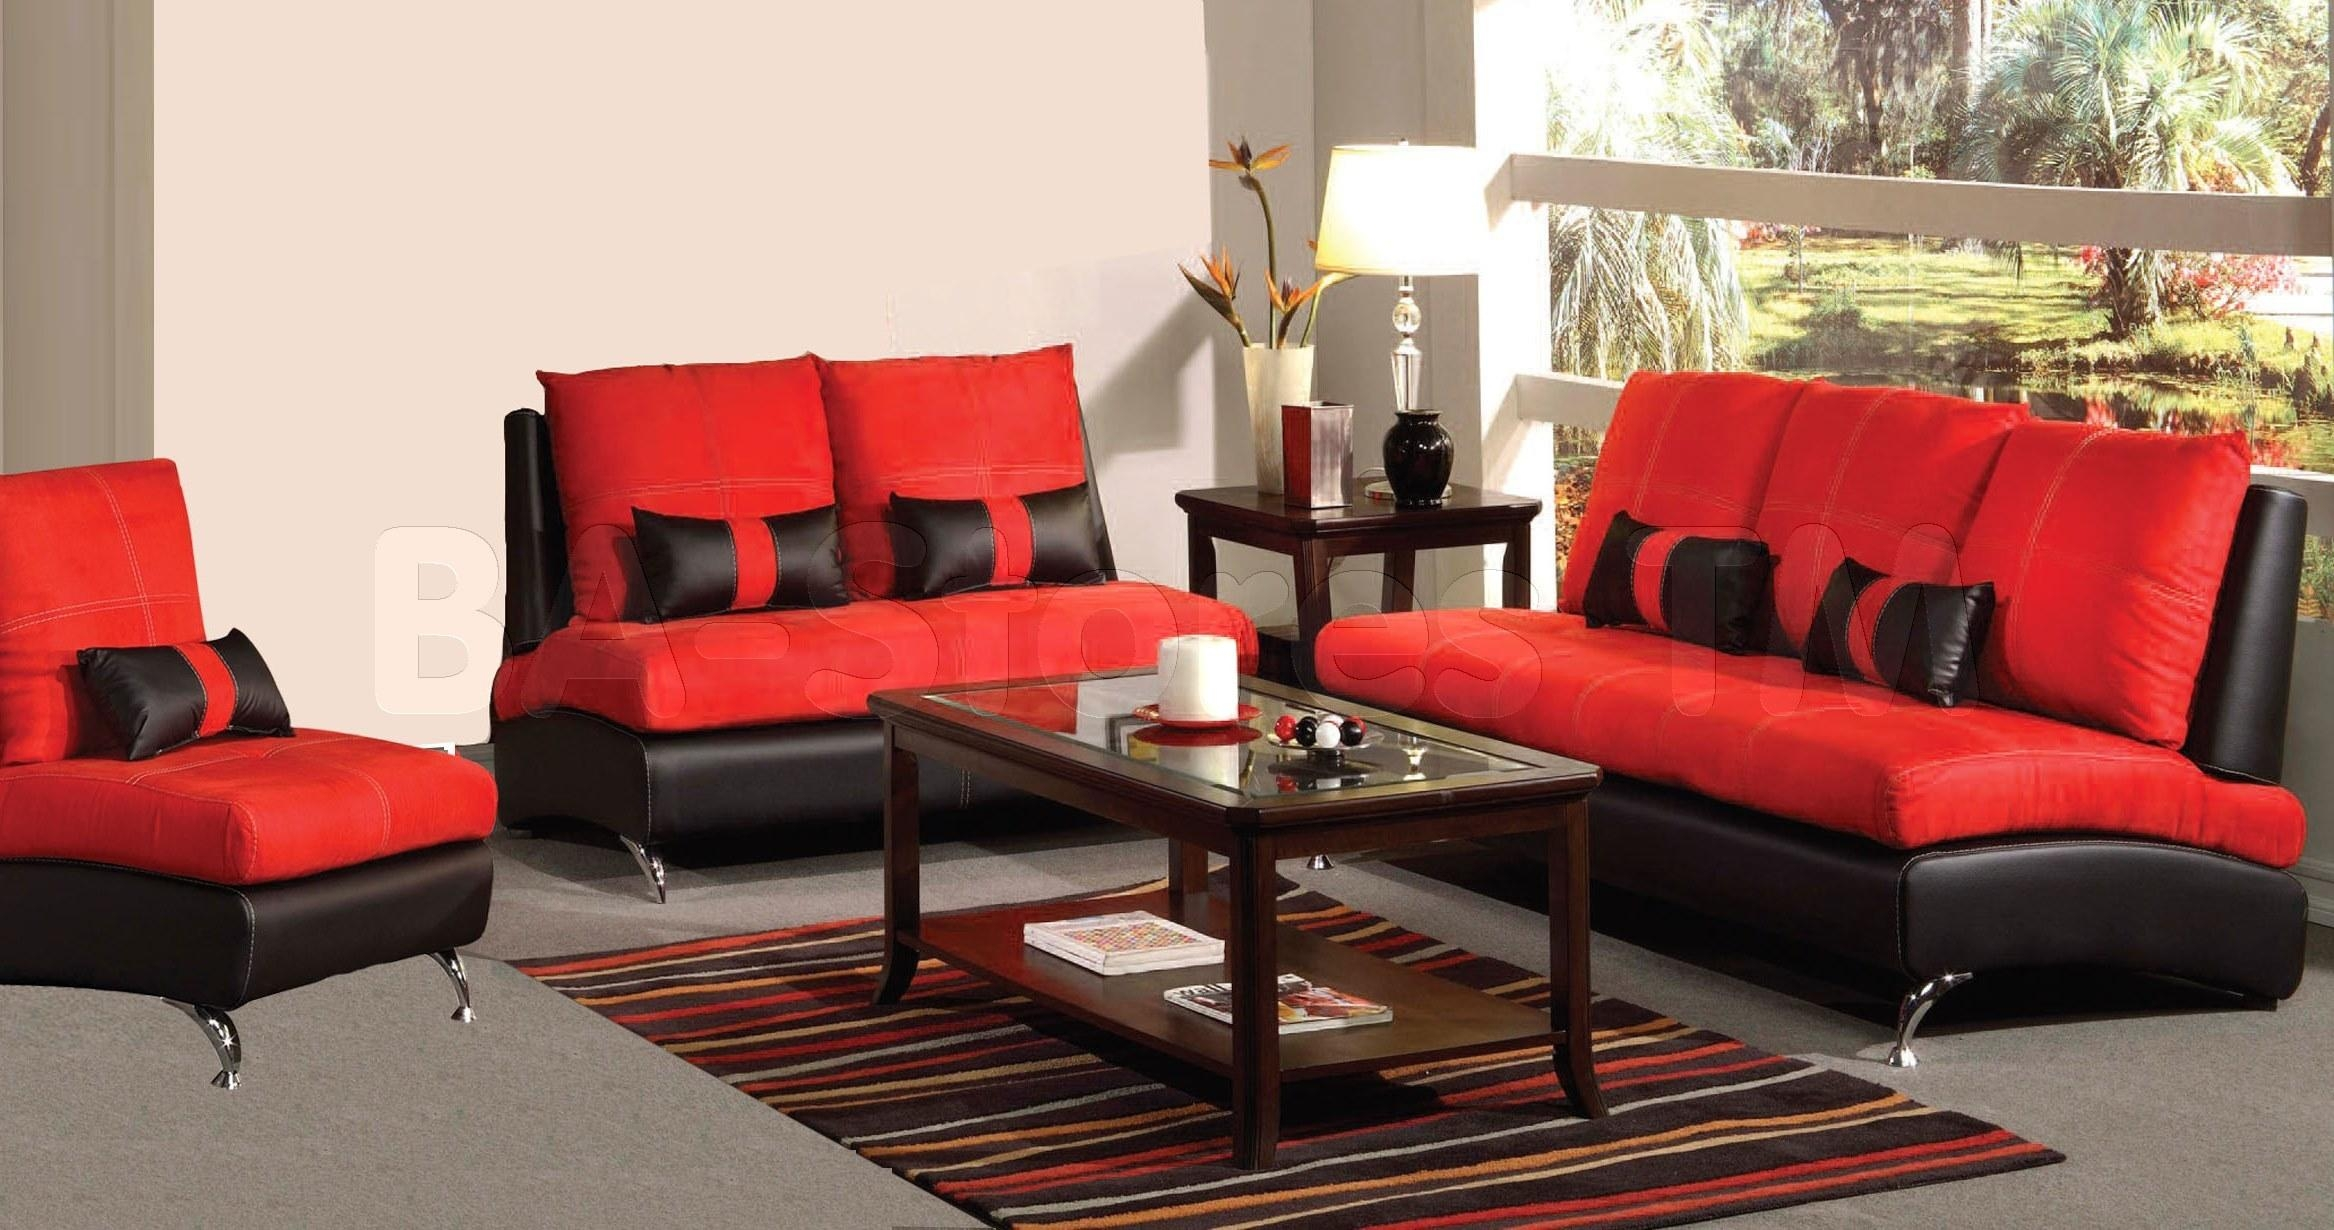 Black And Red Sofa Set | Sofa Gallery | Kengire Pertaining To Black And Red Sofas (Image 7 of 20)